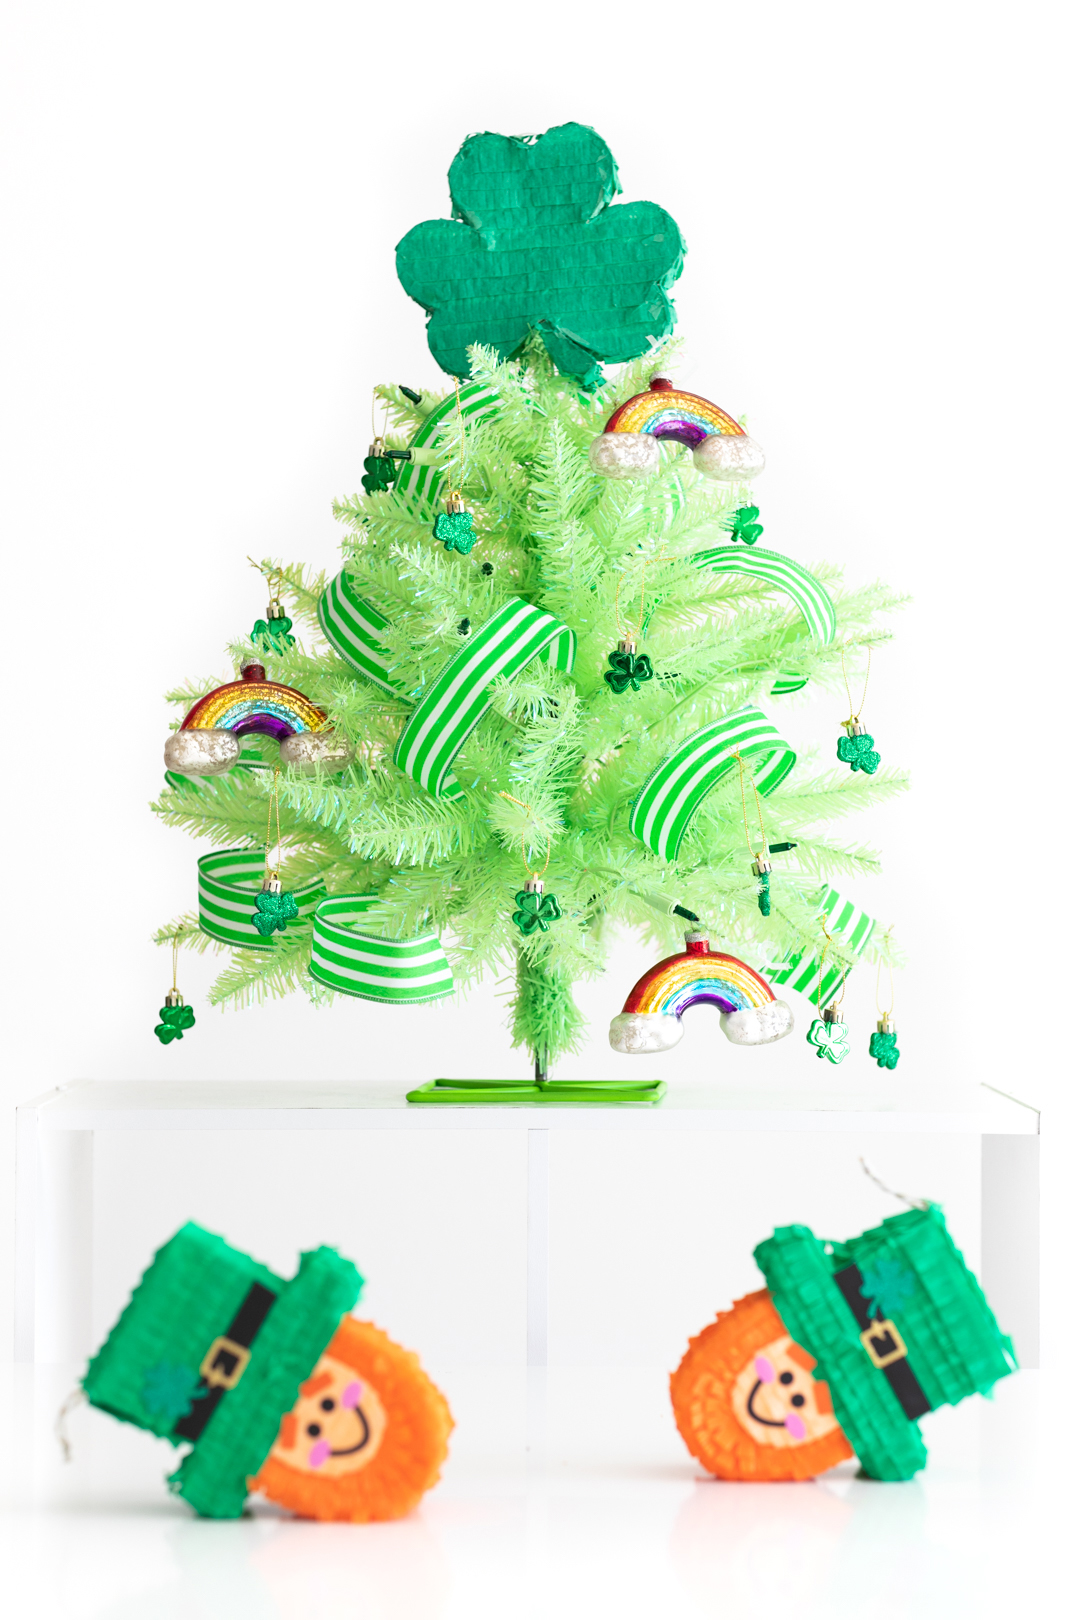 Mini green St. Patrick's Day tree, decorated with mini leprechaun piñatas nearby to decorate for St. Patrick's Day.